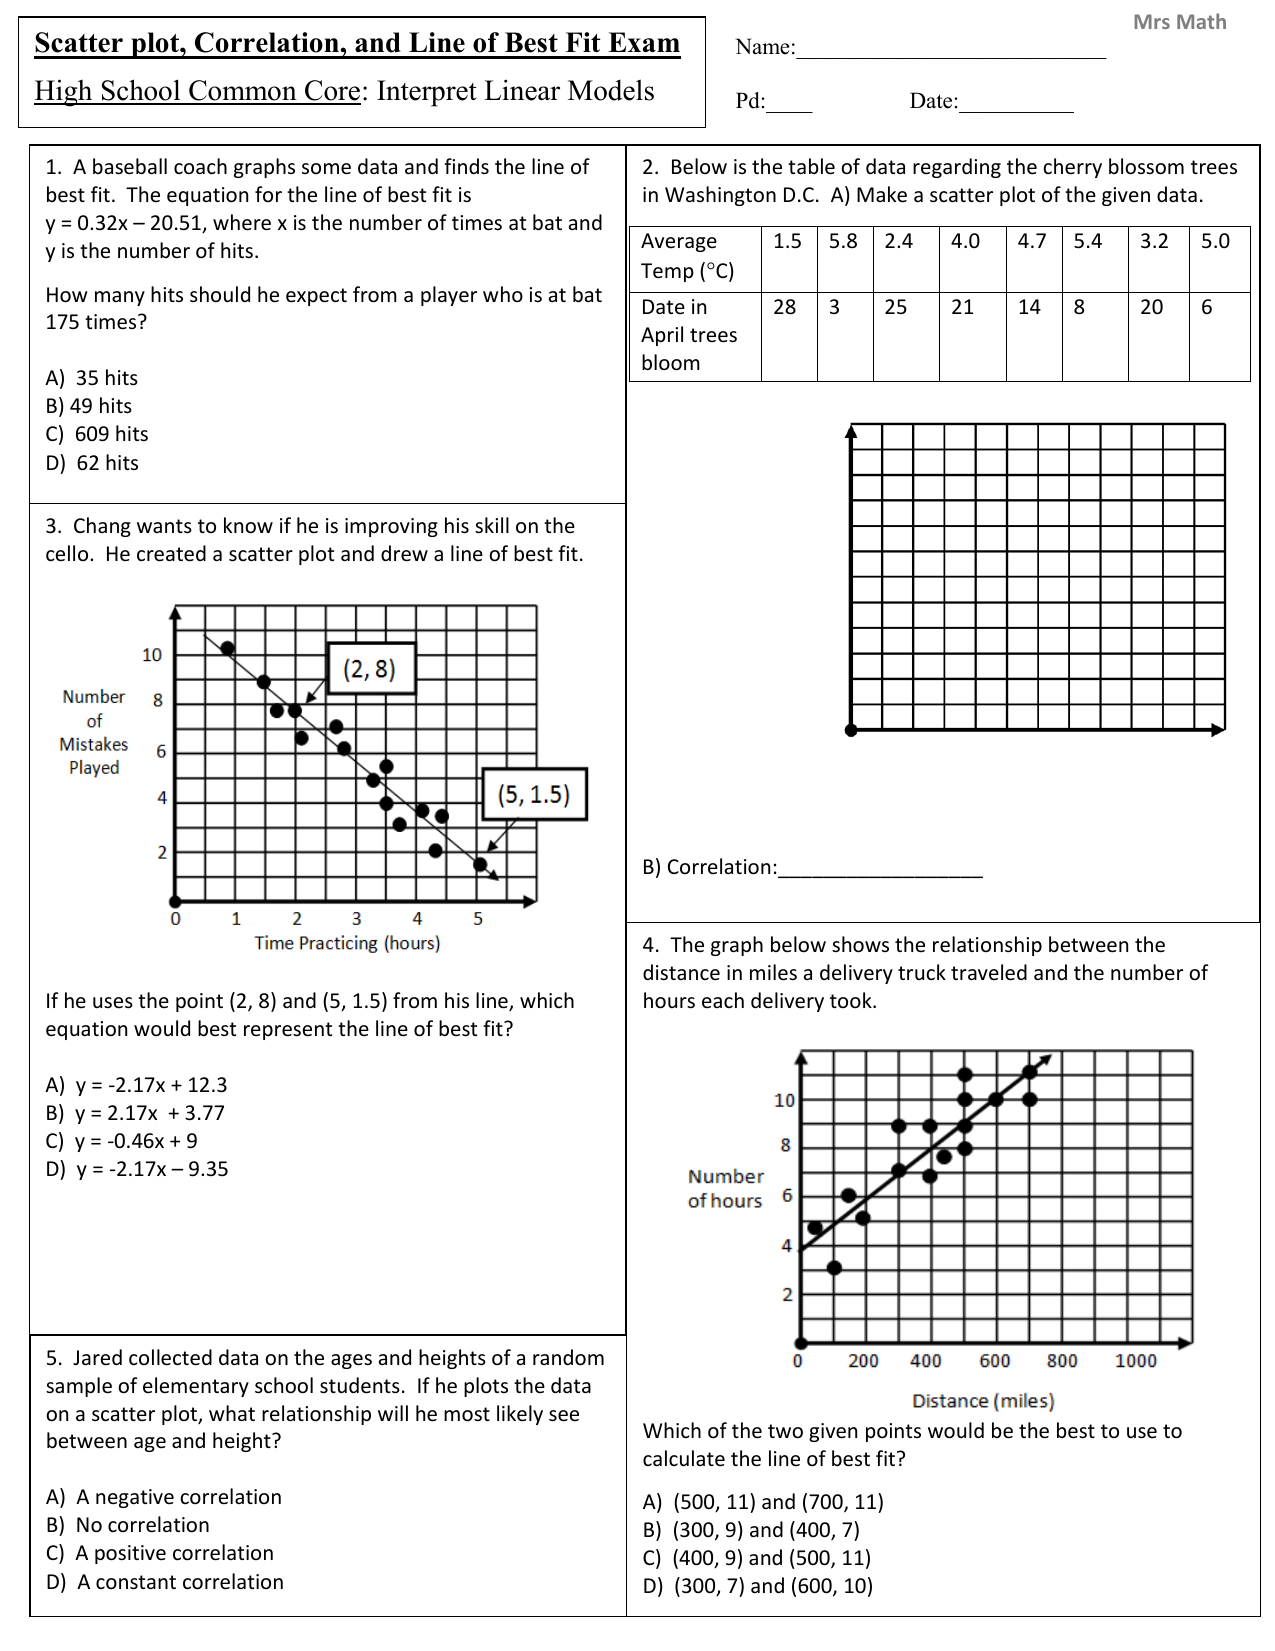 worksheet Scatter Plot And Line Of Best Fit Worksheets scatter plot correlation and line of best fit exam high school